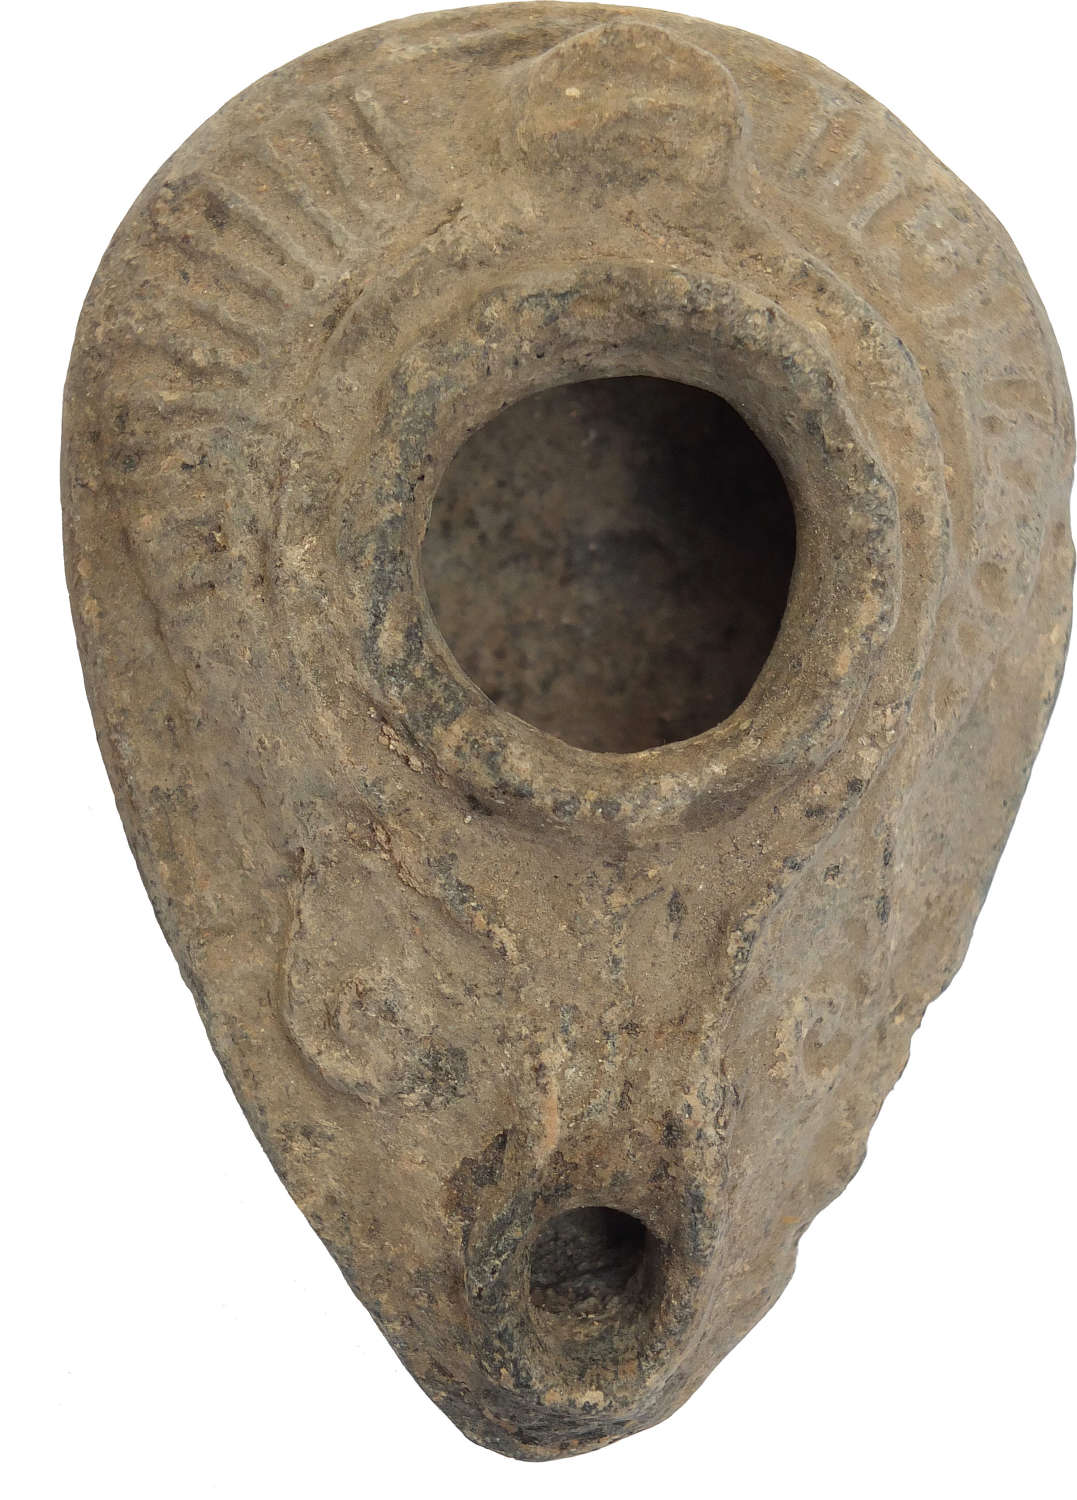 A Byzantine/early Islamic terracotta oil lamp, c. 600-800 A.D.